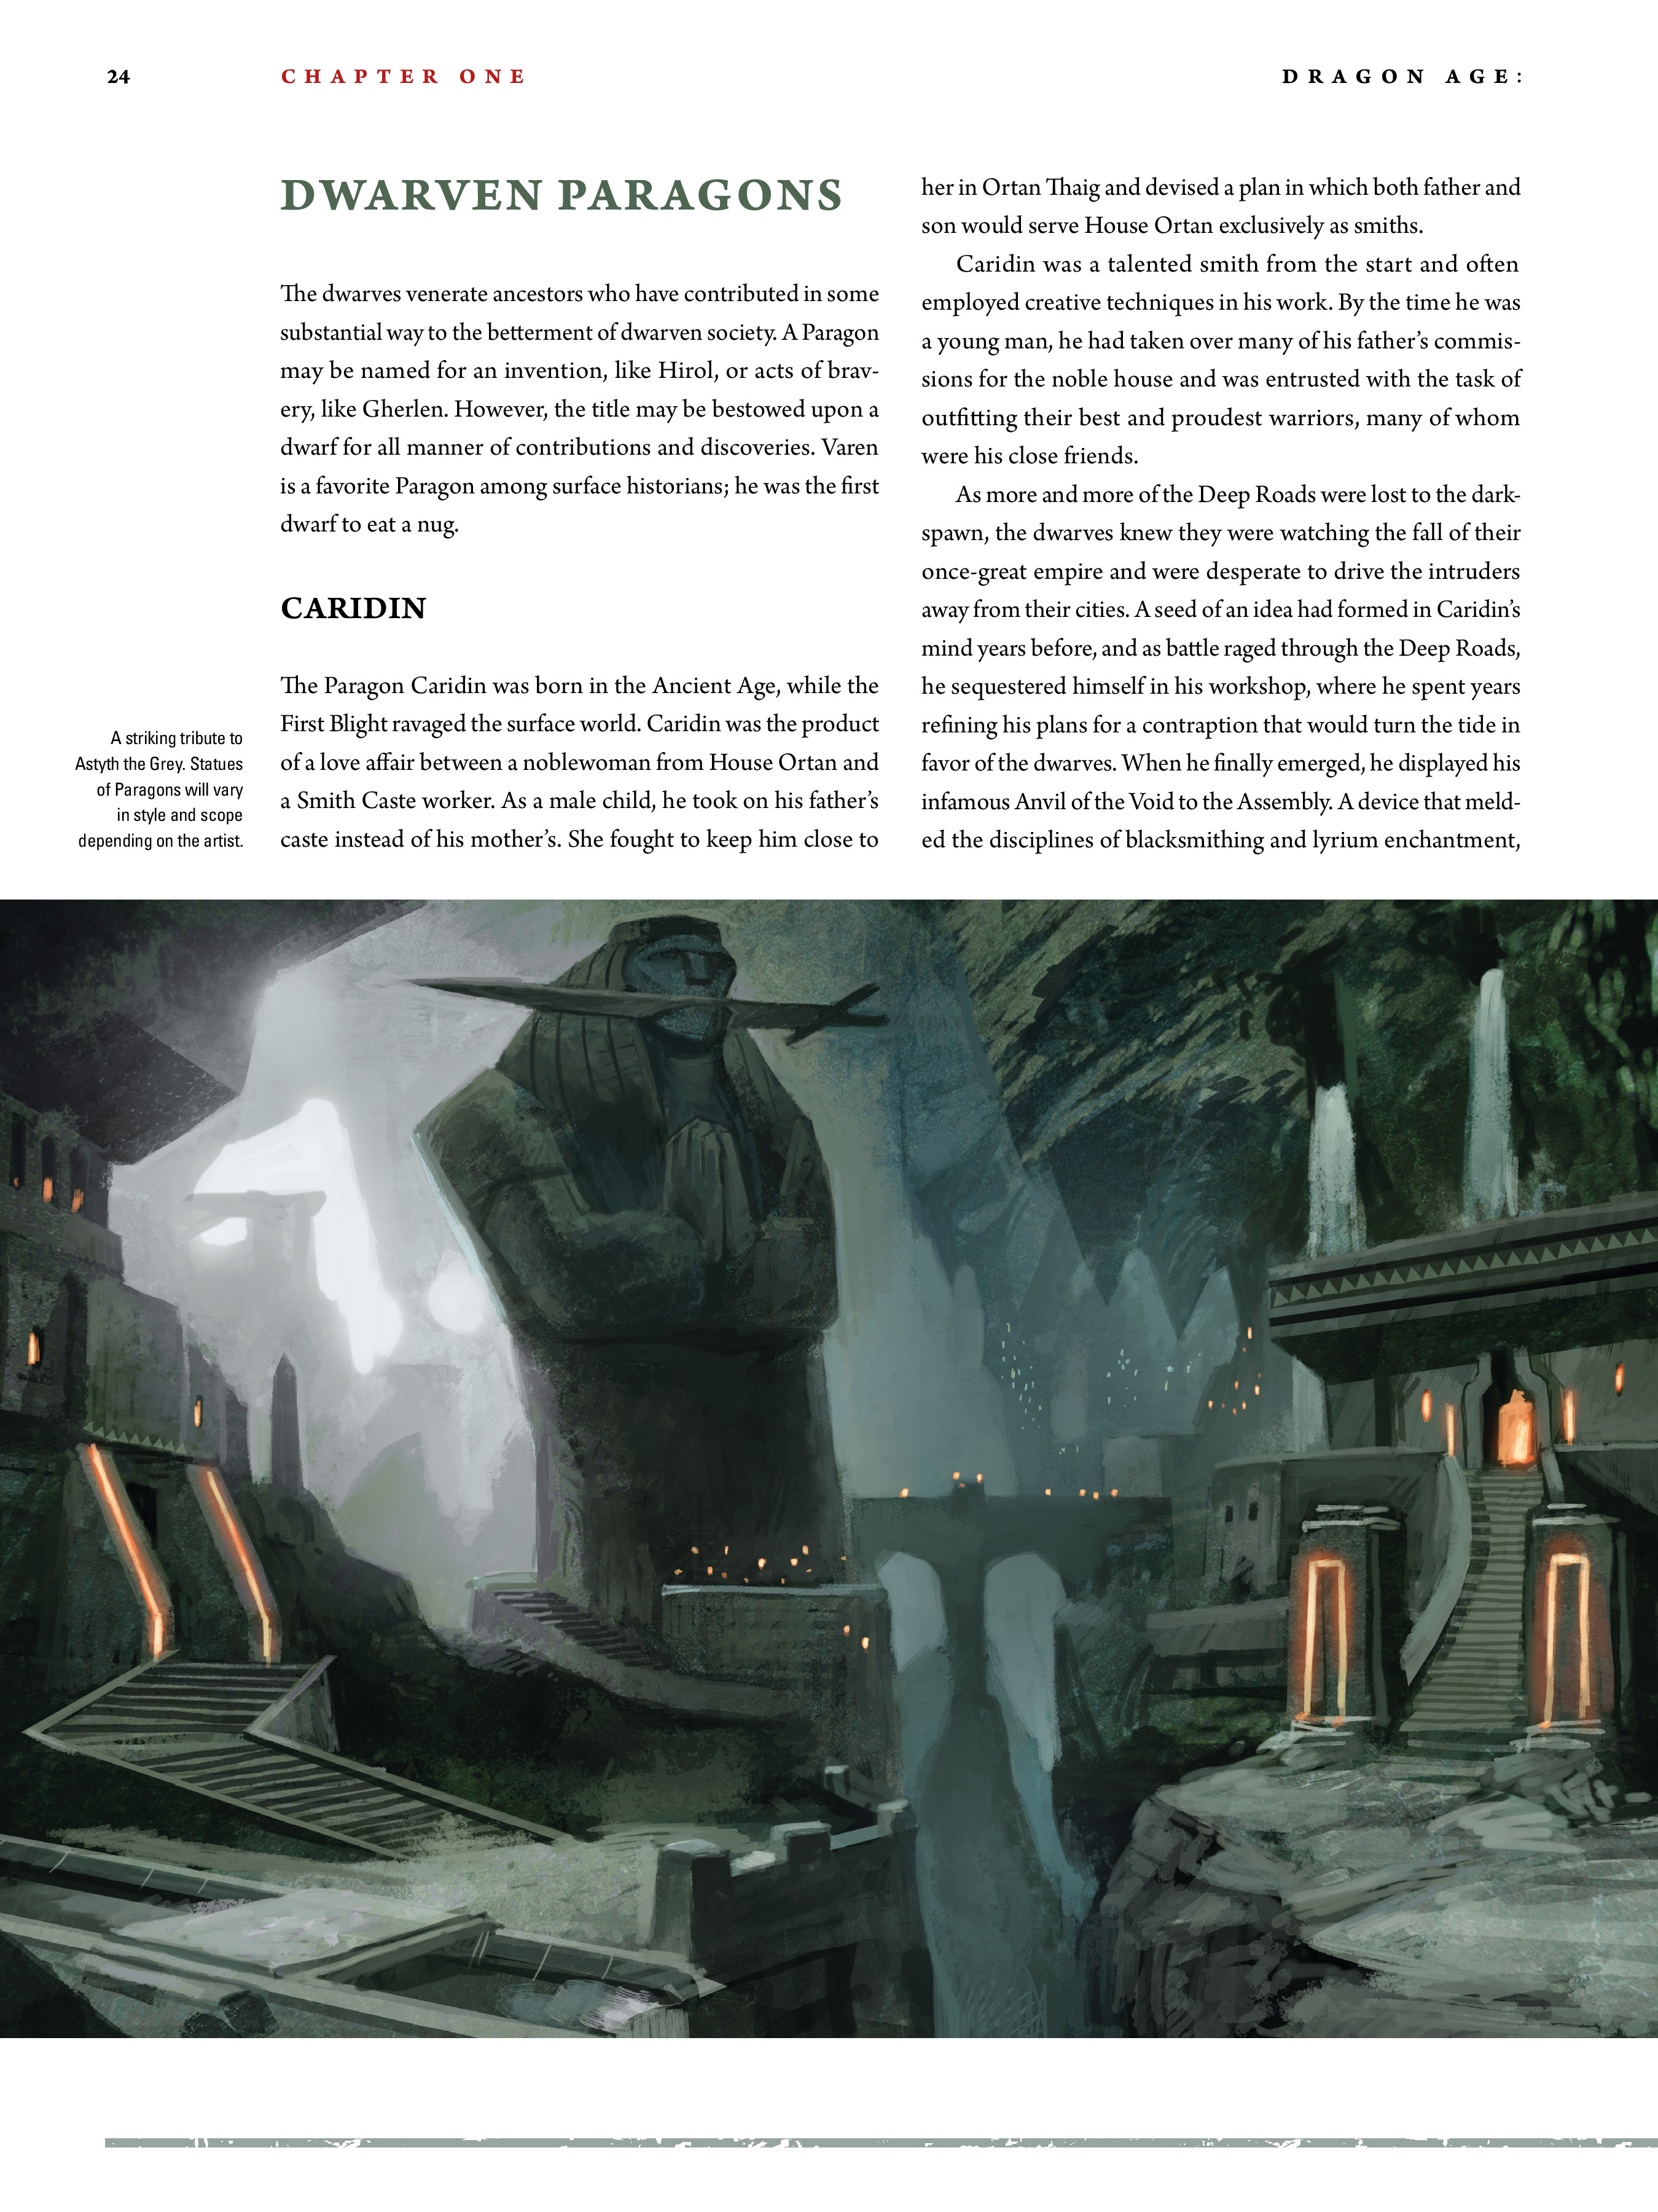 Read online Dragon Age: The World of Thedas comic -  Issue # TPB 2 - 22